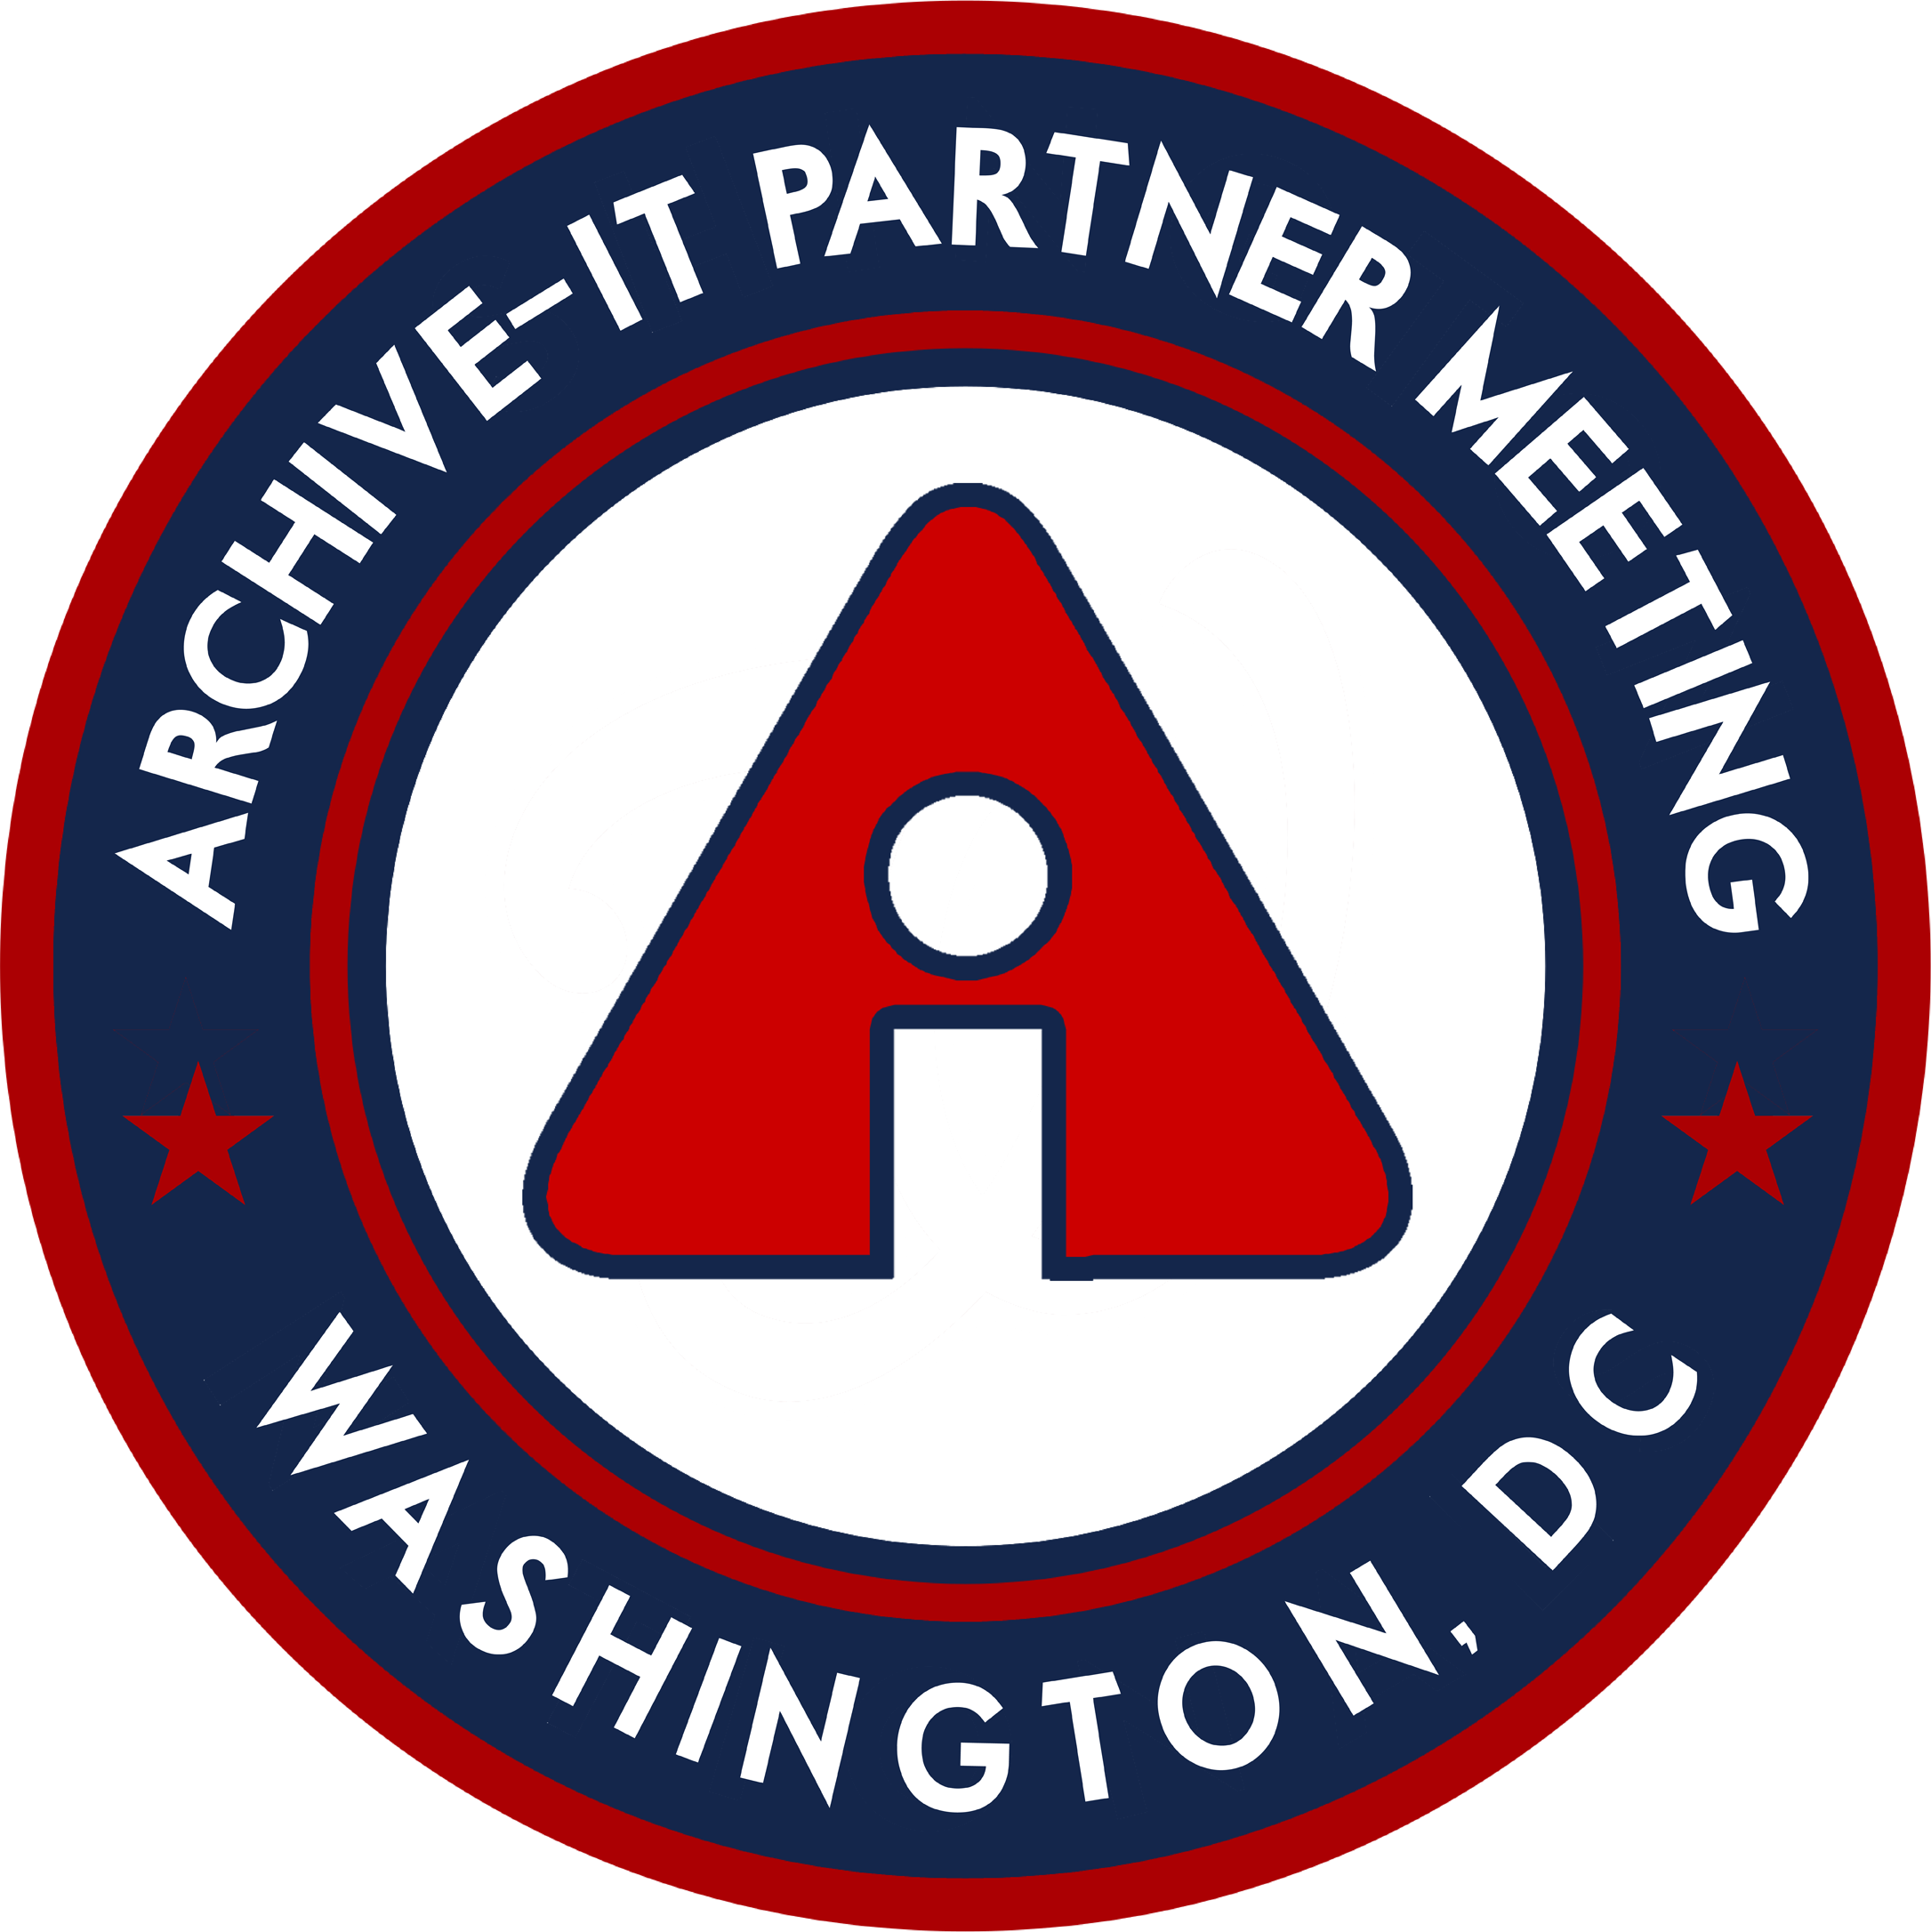 Archive-It Partner Meeting 2018 logo